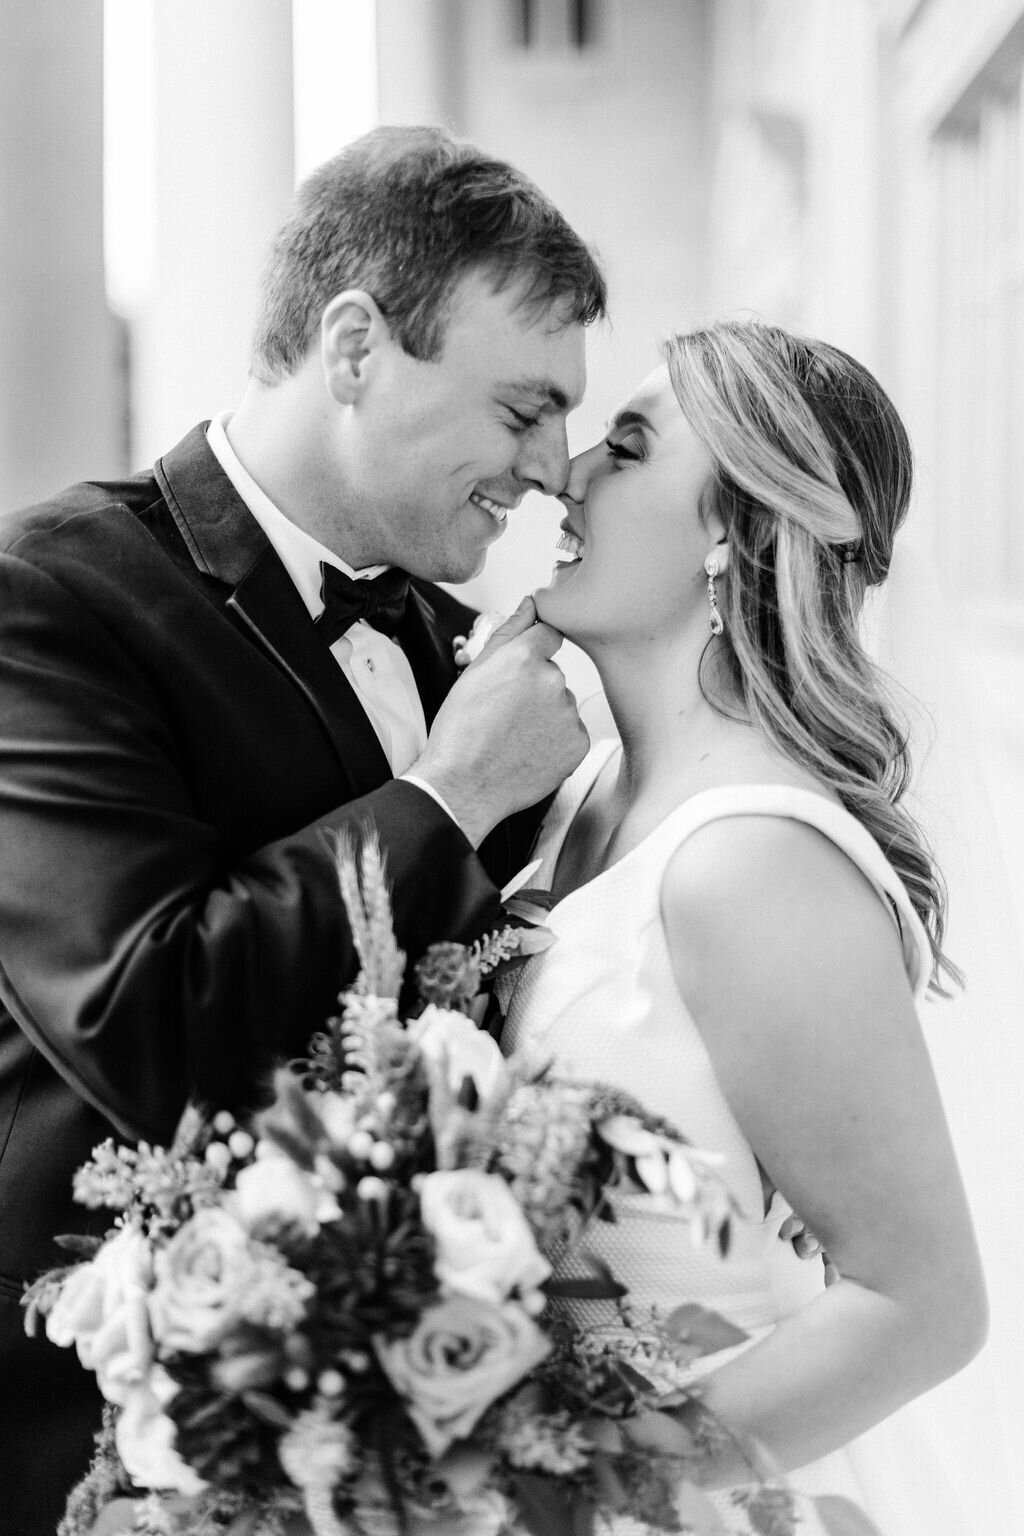 Paige Michelle Photography Light and Airy Bride and Groom Kentucky + Nashville, TN Wedding Photographer